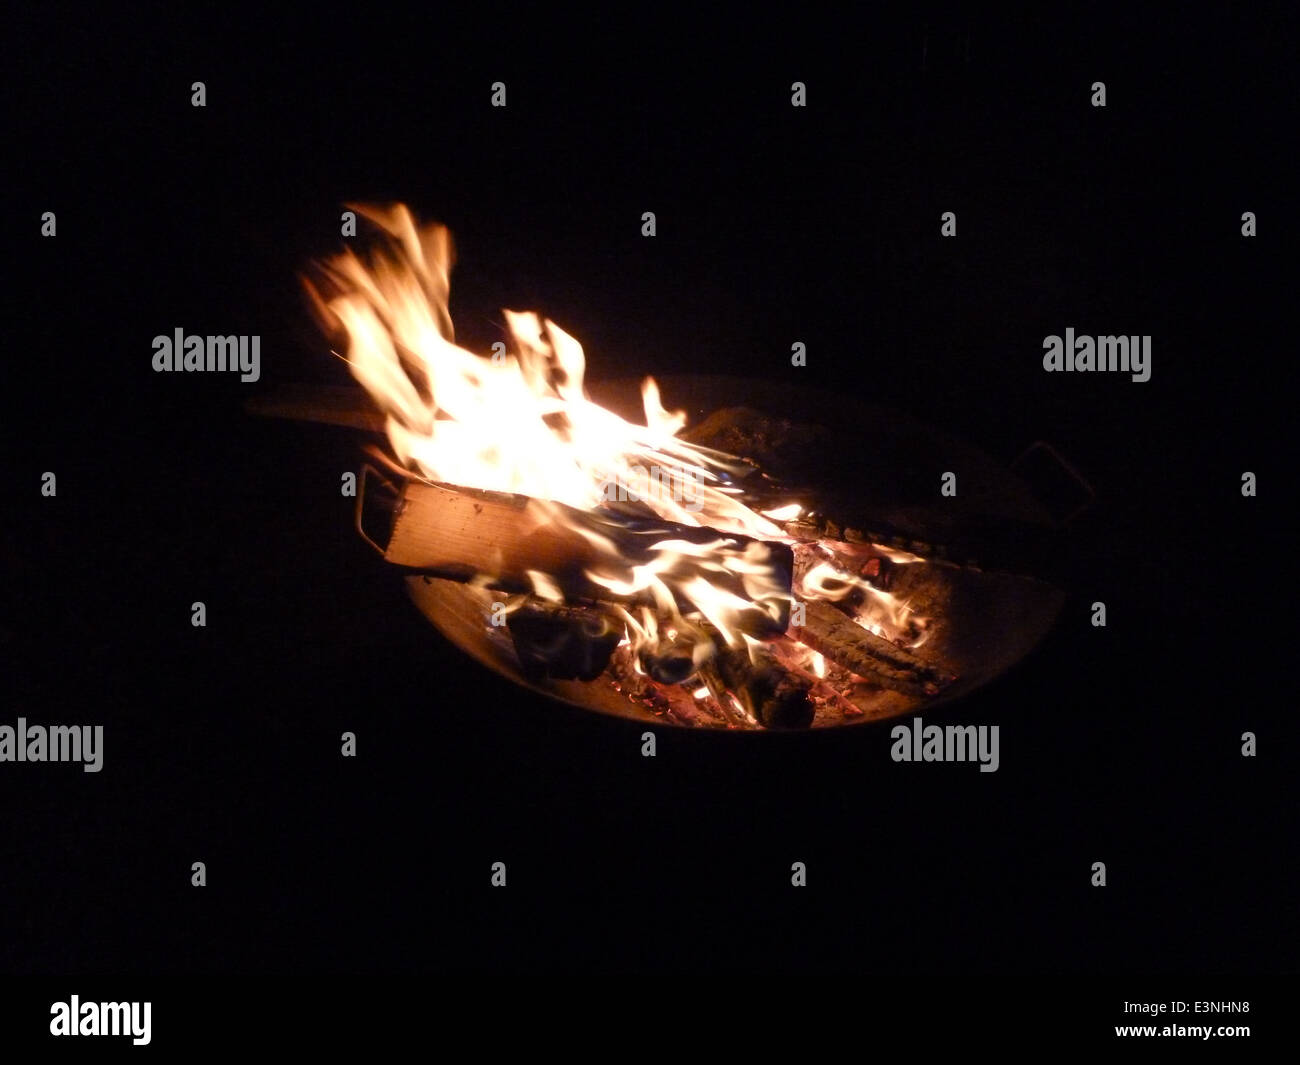 Lagerfeuer - Stock Image